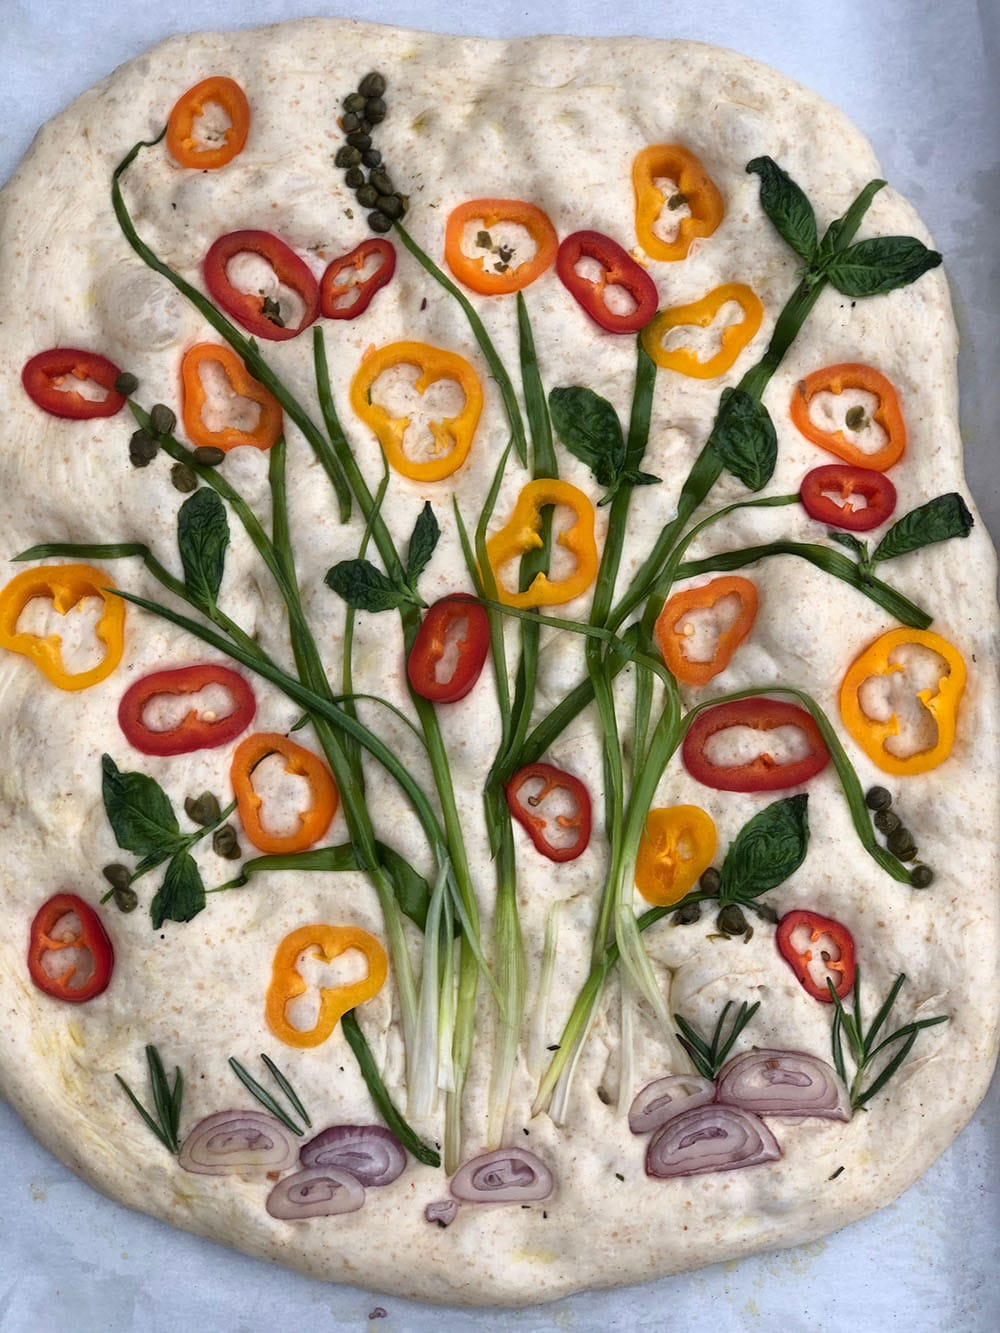 How To Make Focaccia Bread Art With Vegetables Herbs Sugar Geek Show